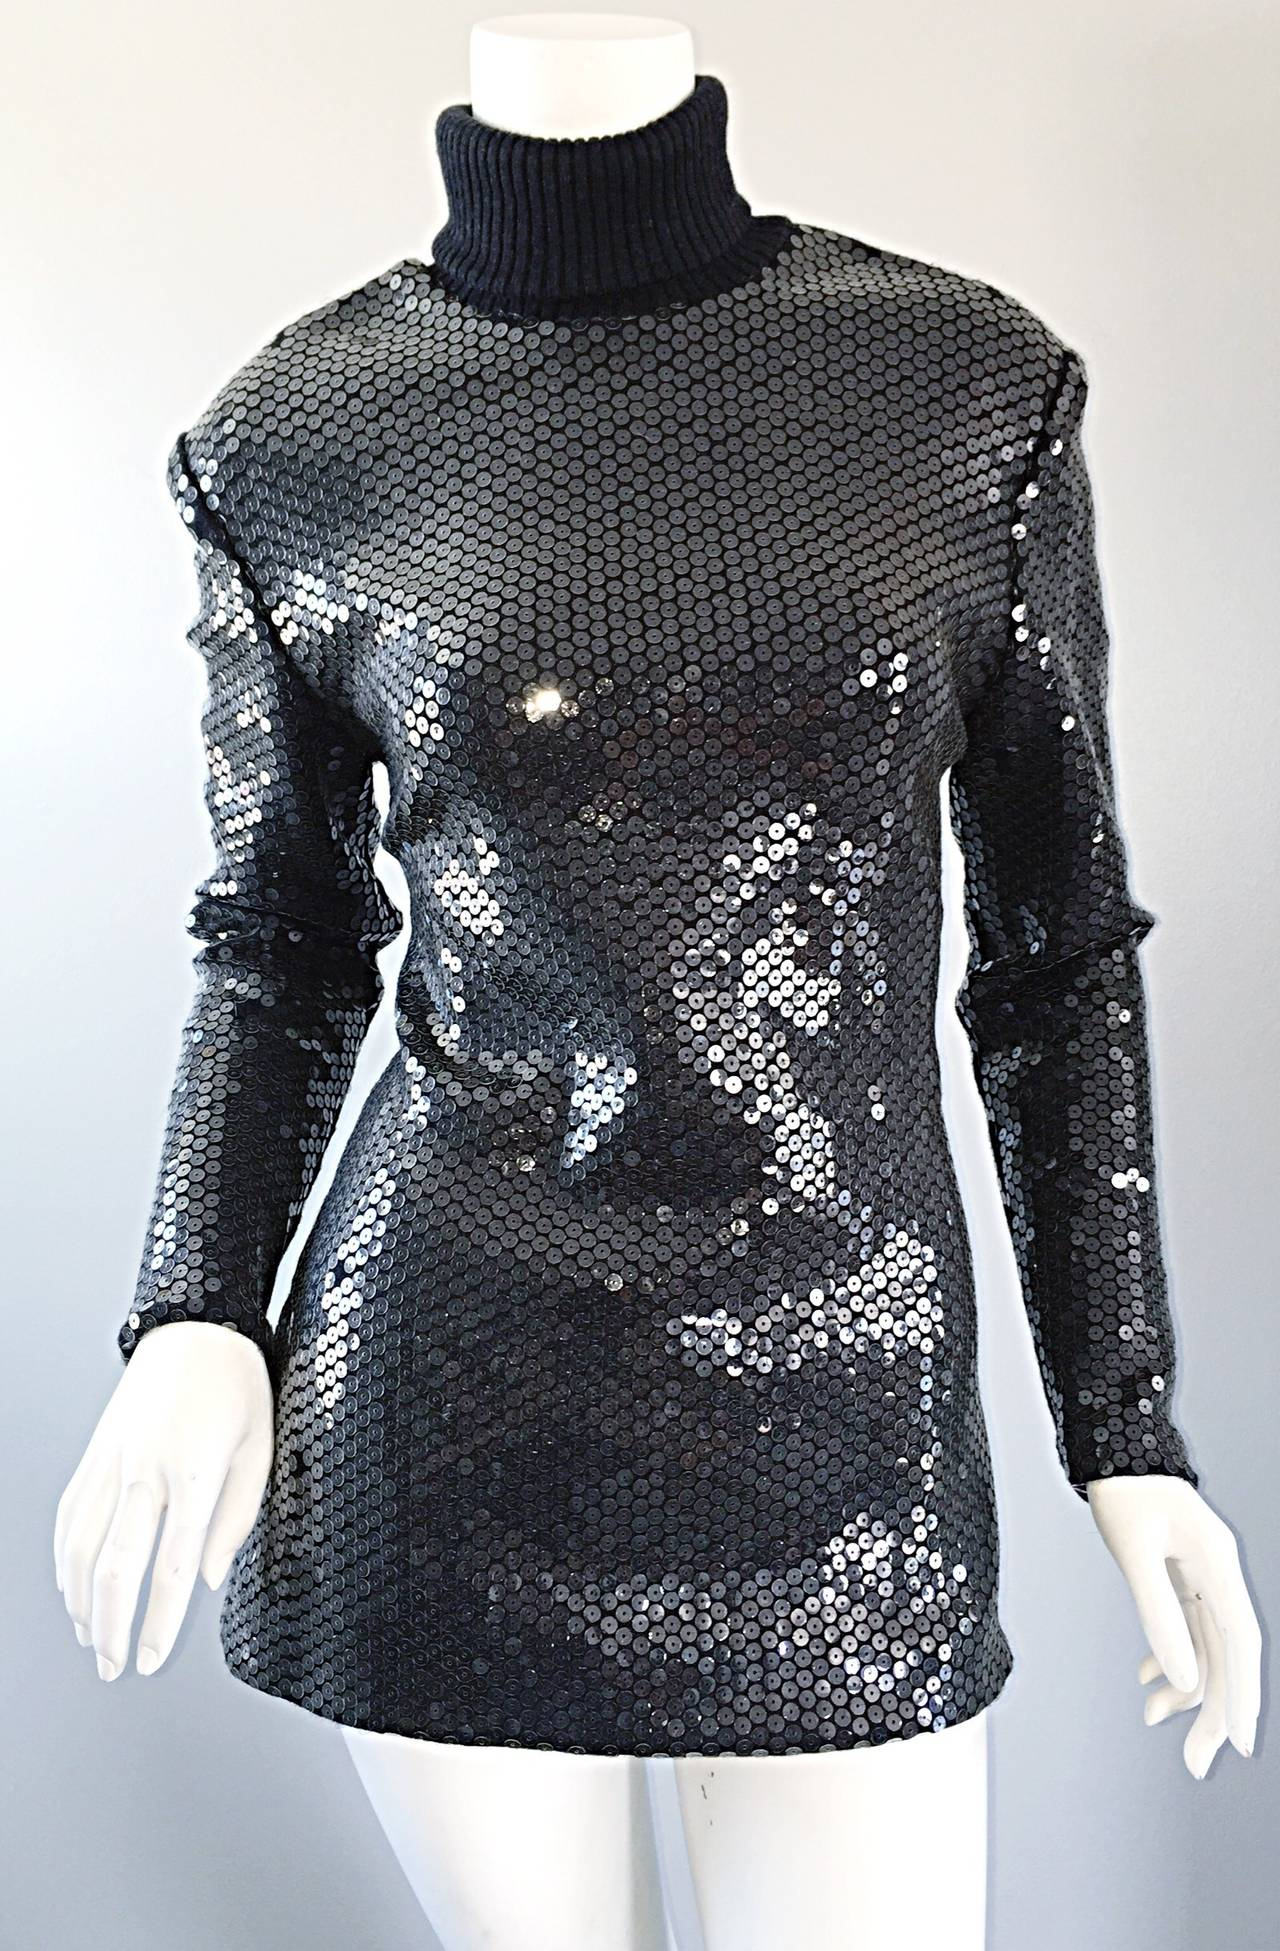 A very rare piece, dating from the very early career of Michael Kors! Runway sample sweater/turtleneck! Charcoal gray wool/cashmere, with all-over clear sequins. A classic, tailored fit, with light shoulder pads (can easily be snipped out). Vintage